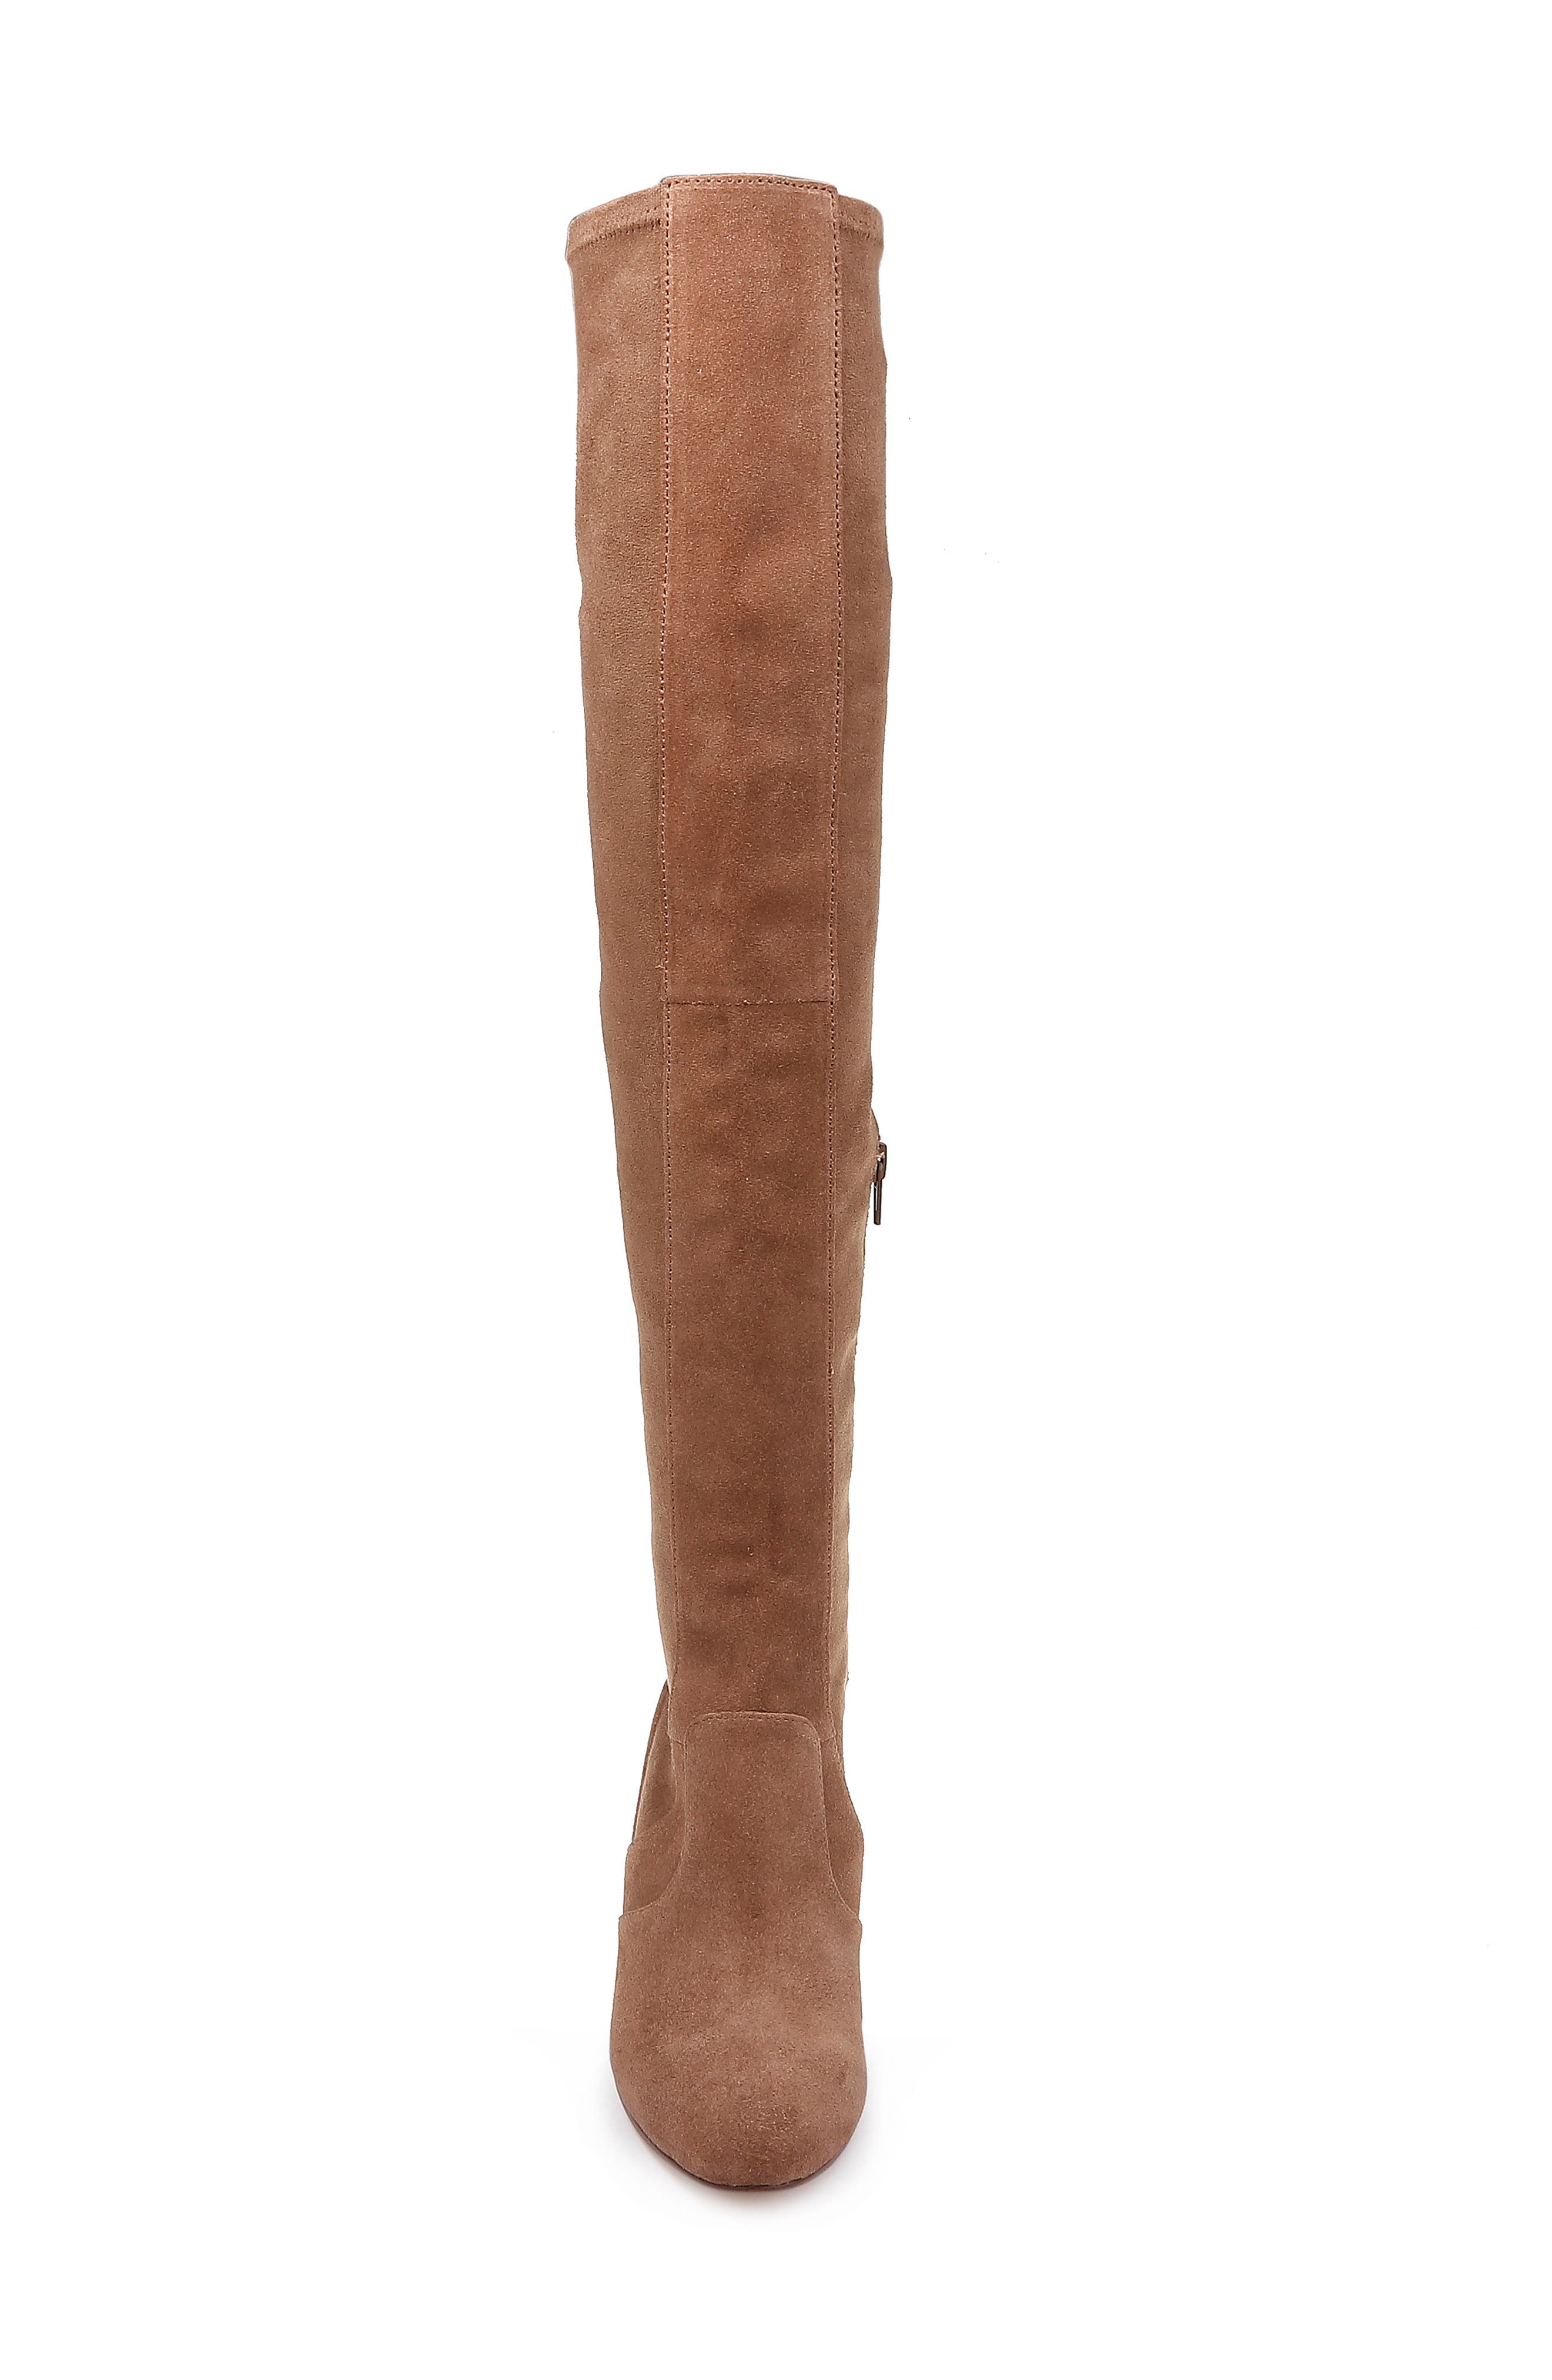 Over the Knee Stretch Back Boot,                             Alternate thumbnail 4, color,                             LIGHT BROWN SUEDE